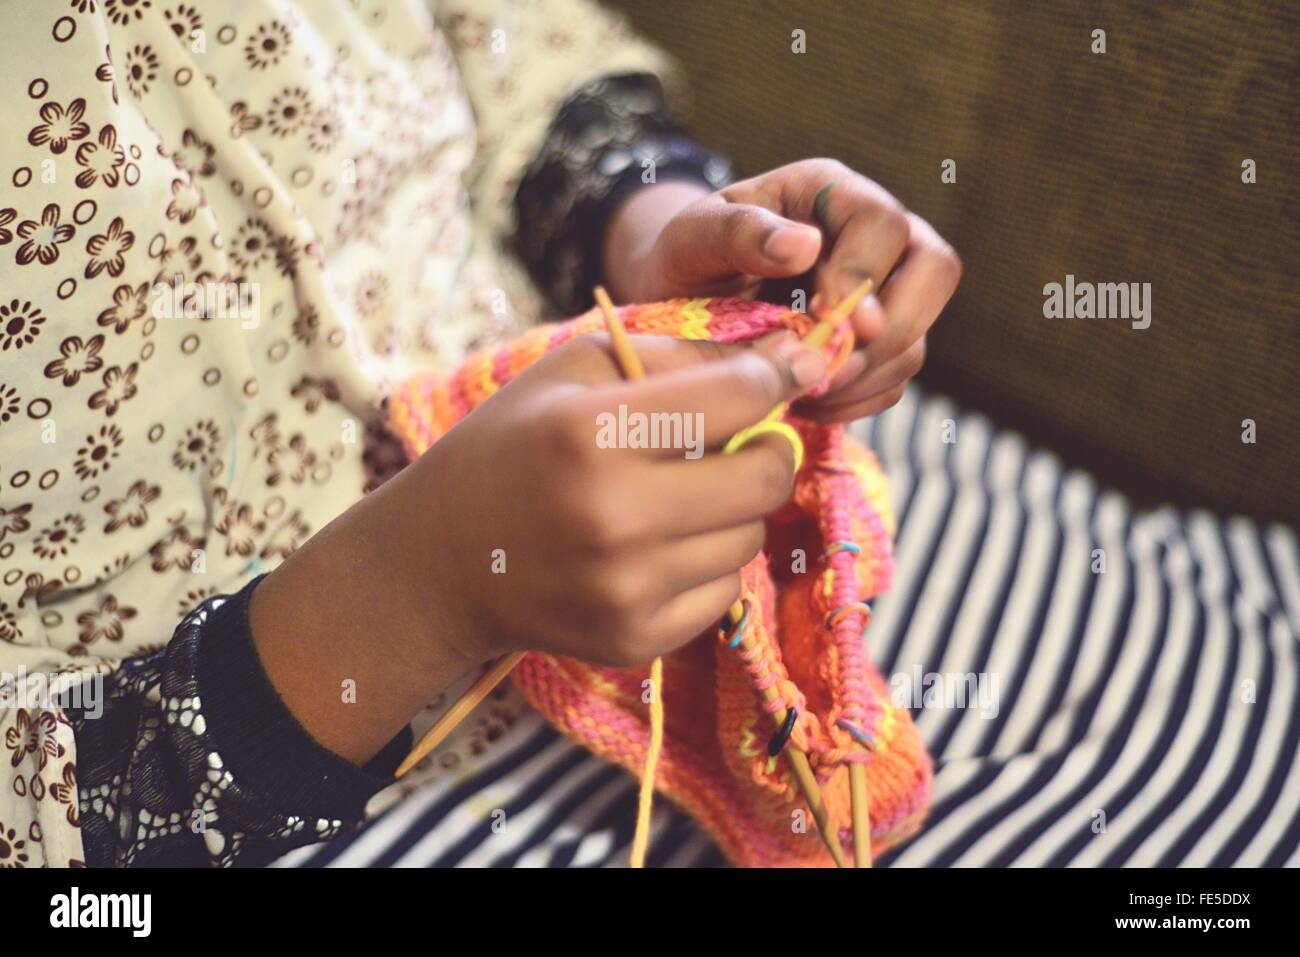 Woman's Hands Knitting - Stock Image